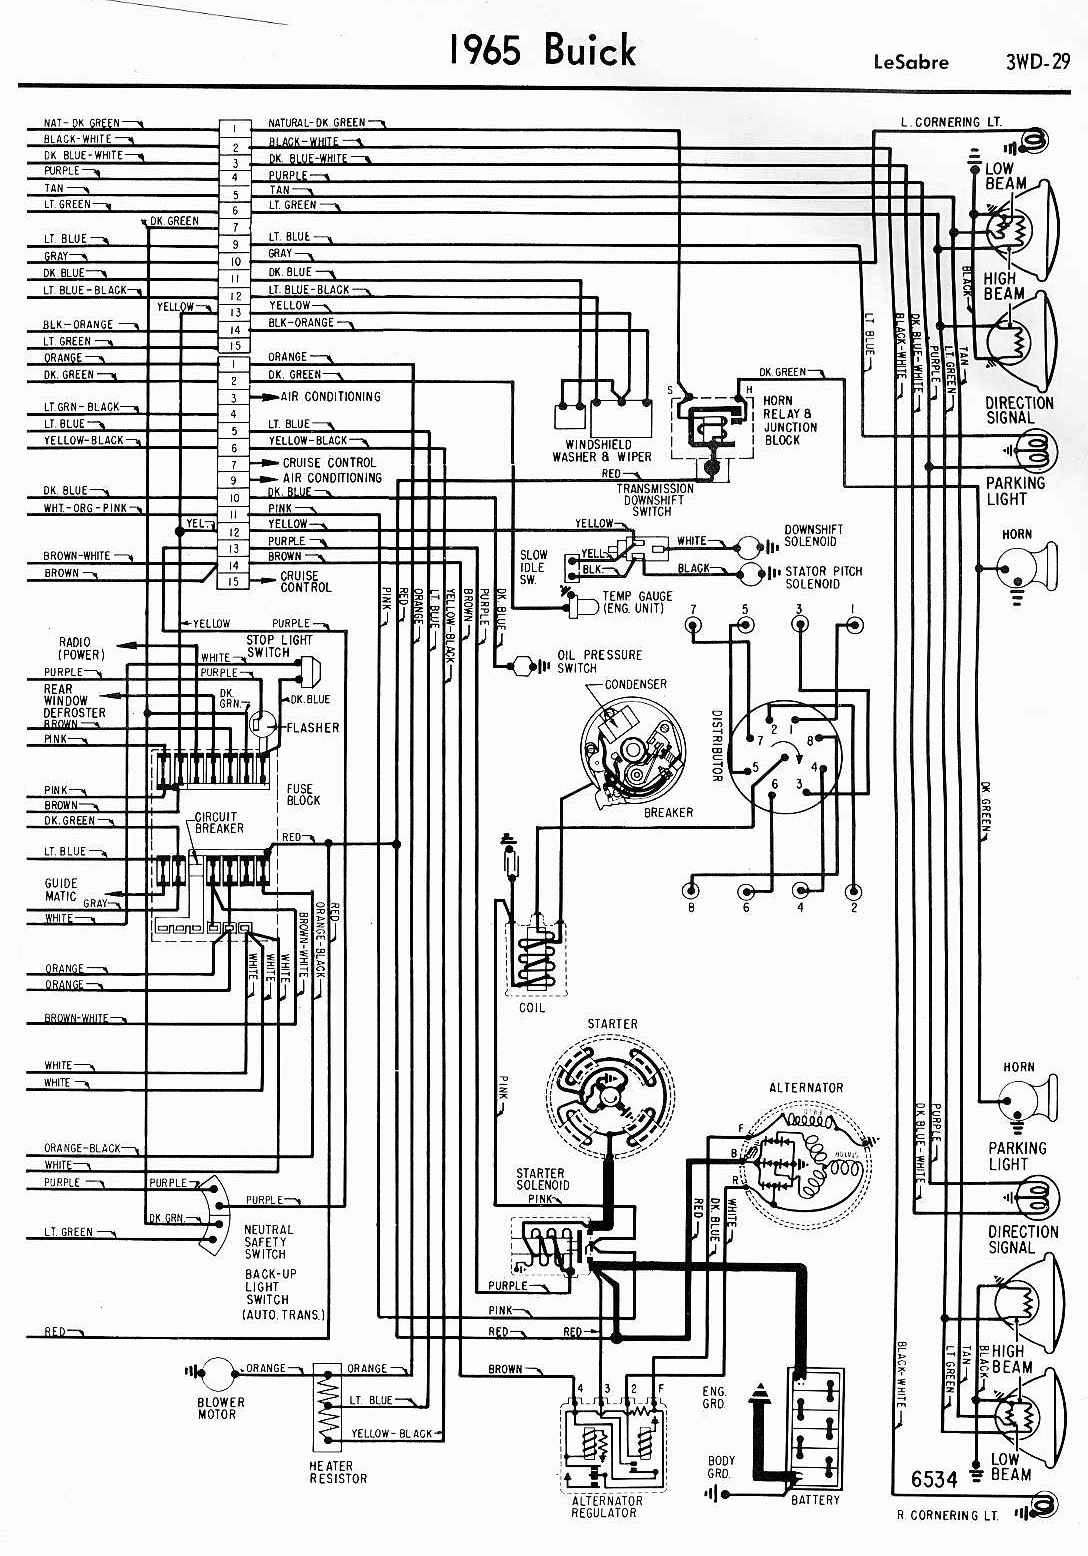 1971 buick skylark wiring diagram trusted wiring diagram 1969 1970 buick gs california 1965 buick skylark wiring diagram example electrical wiring diagram \\u2022 1971 buick skylark black 1971 buick skylark wiring diagram